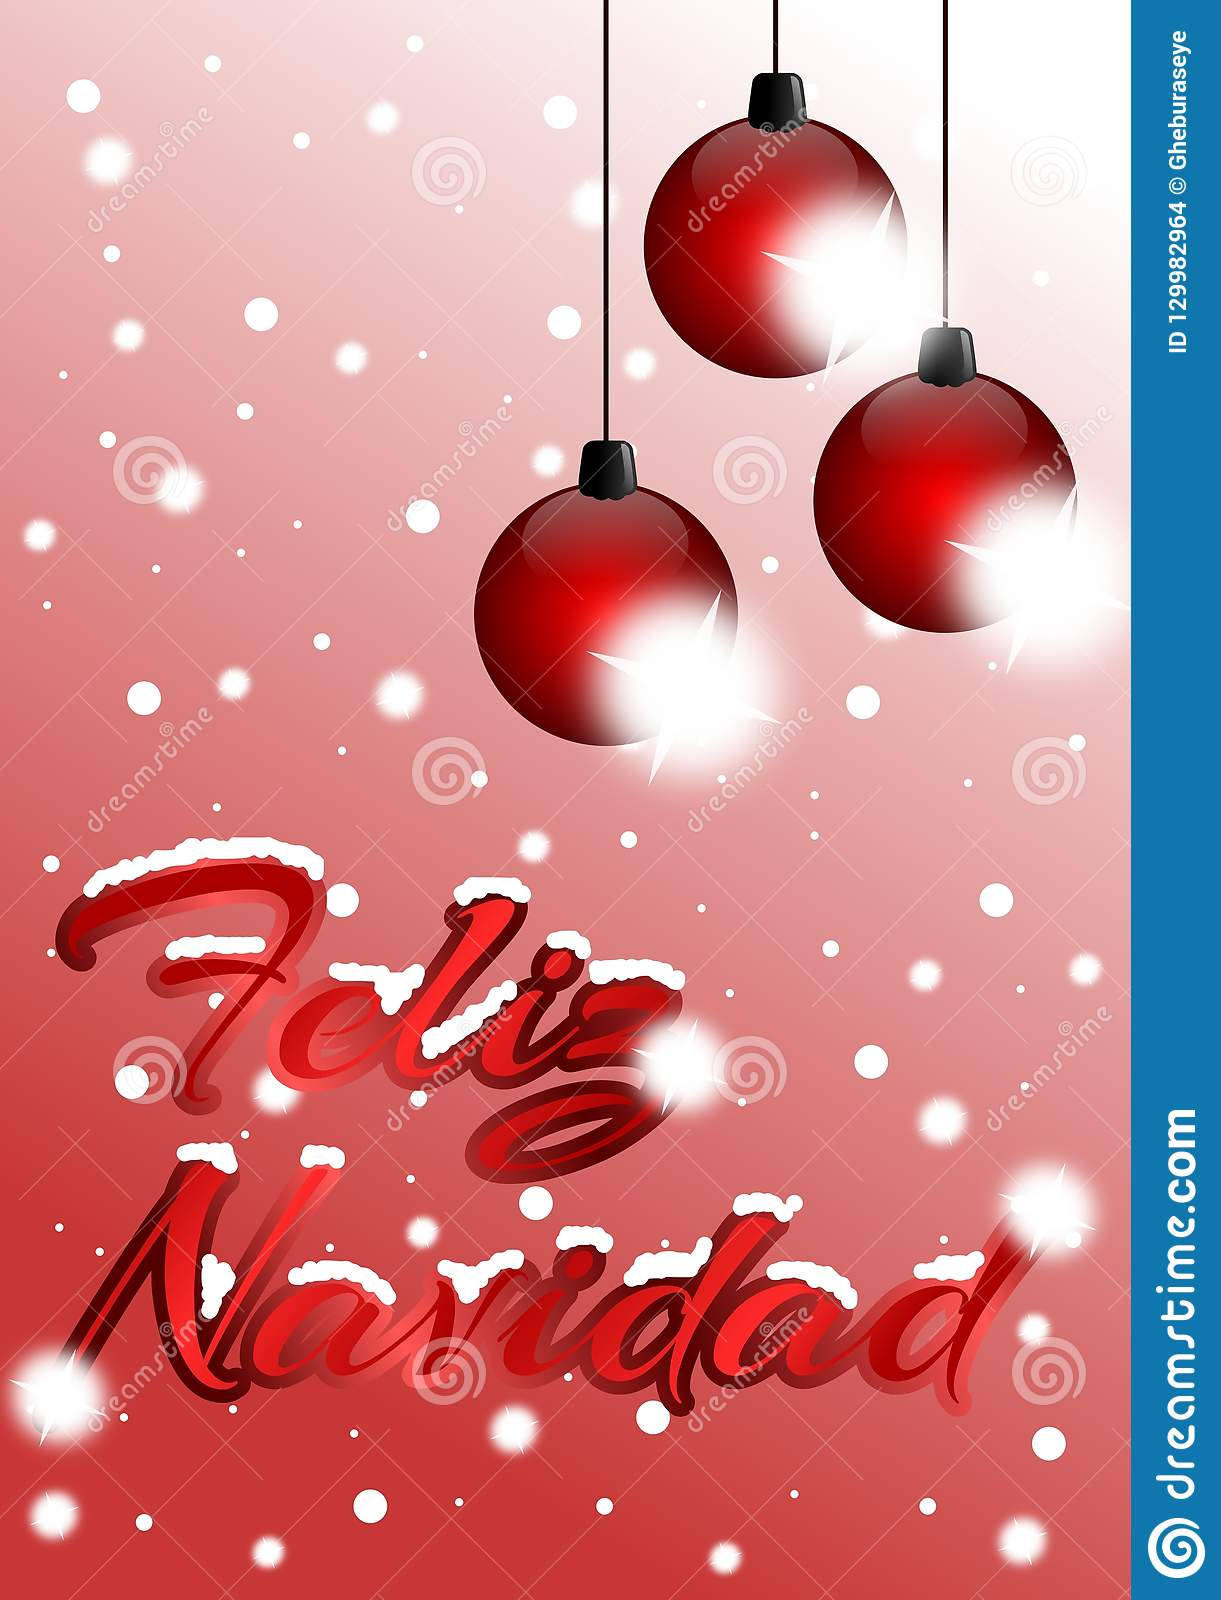 Christmas In Spanish.Christmas Greeting Cards In Spanish Stock Illustration